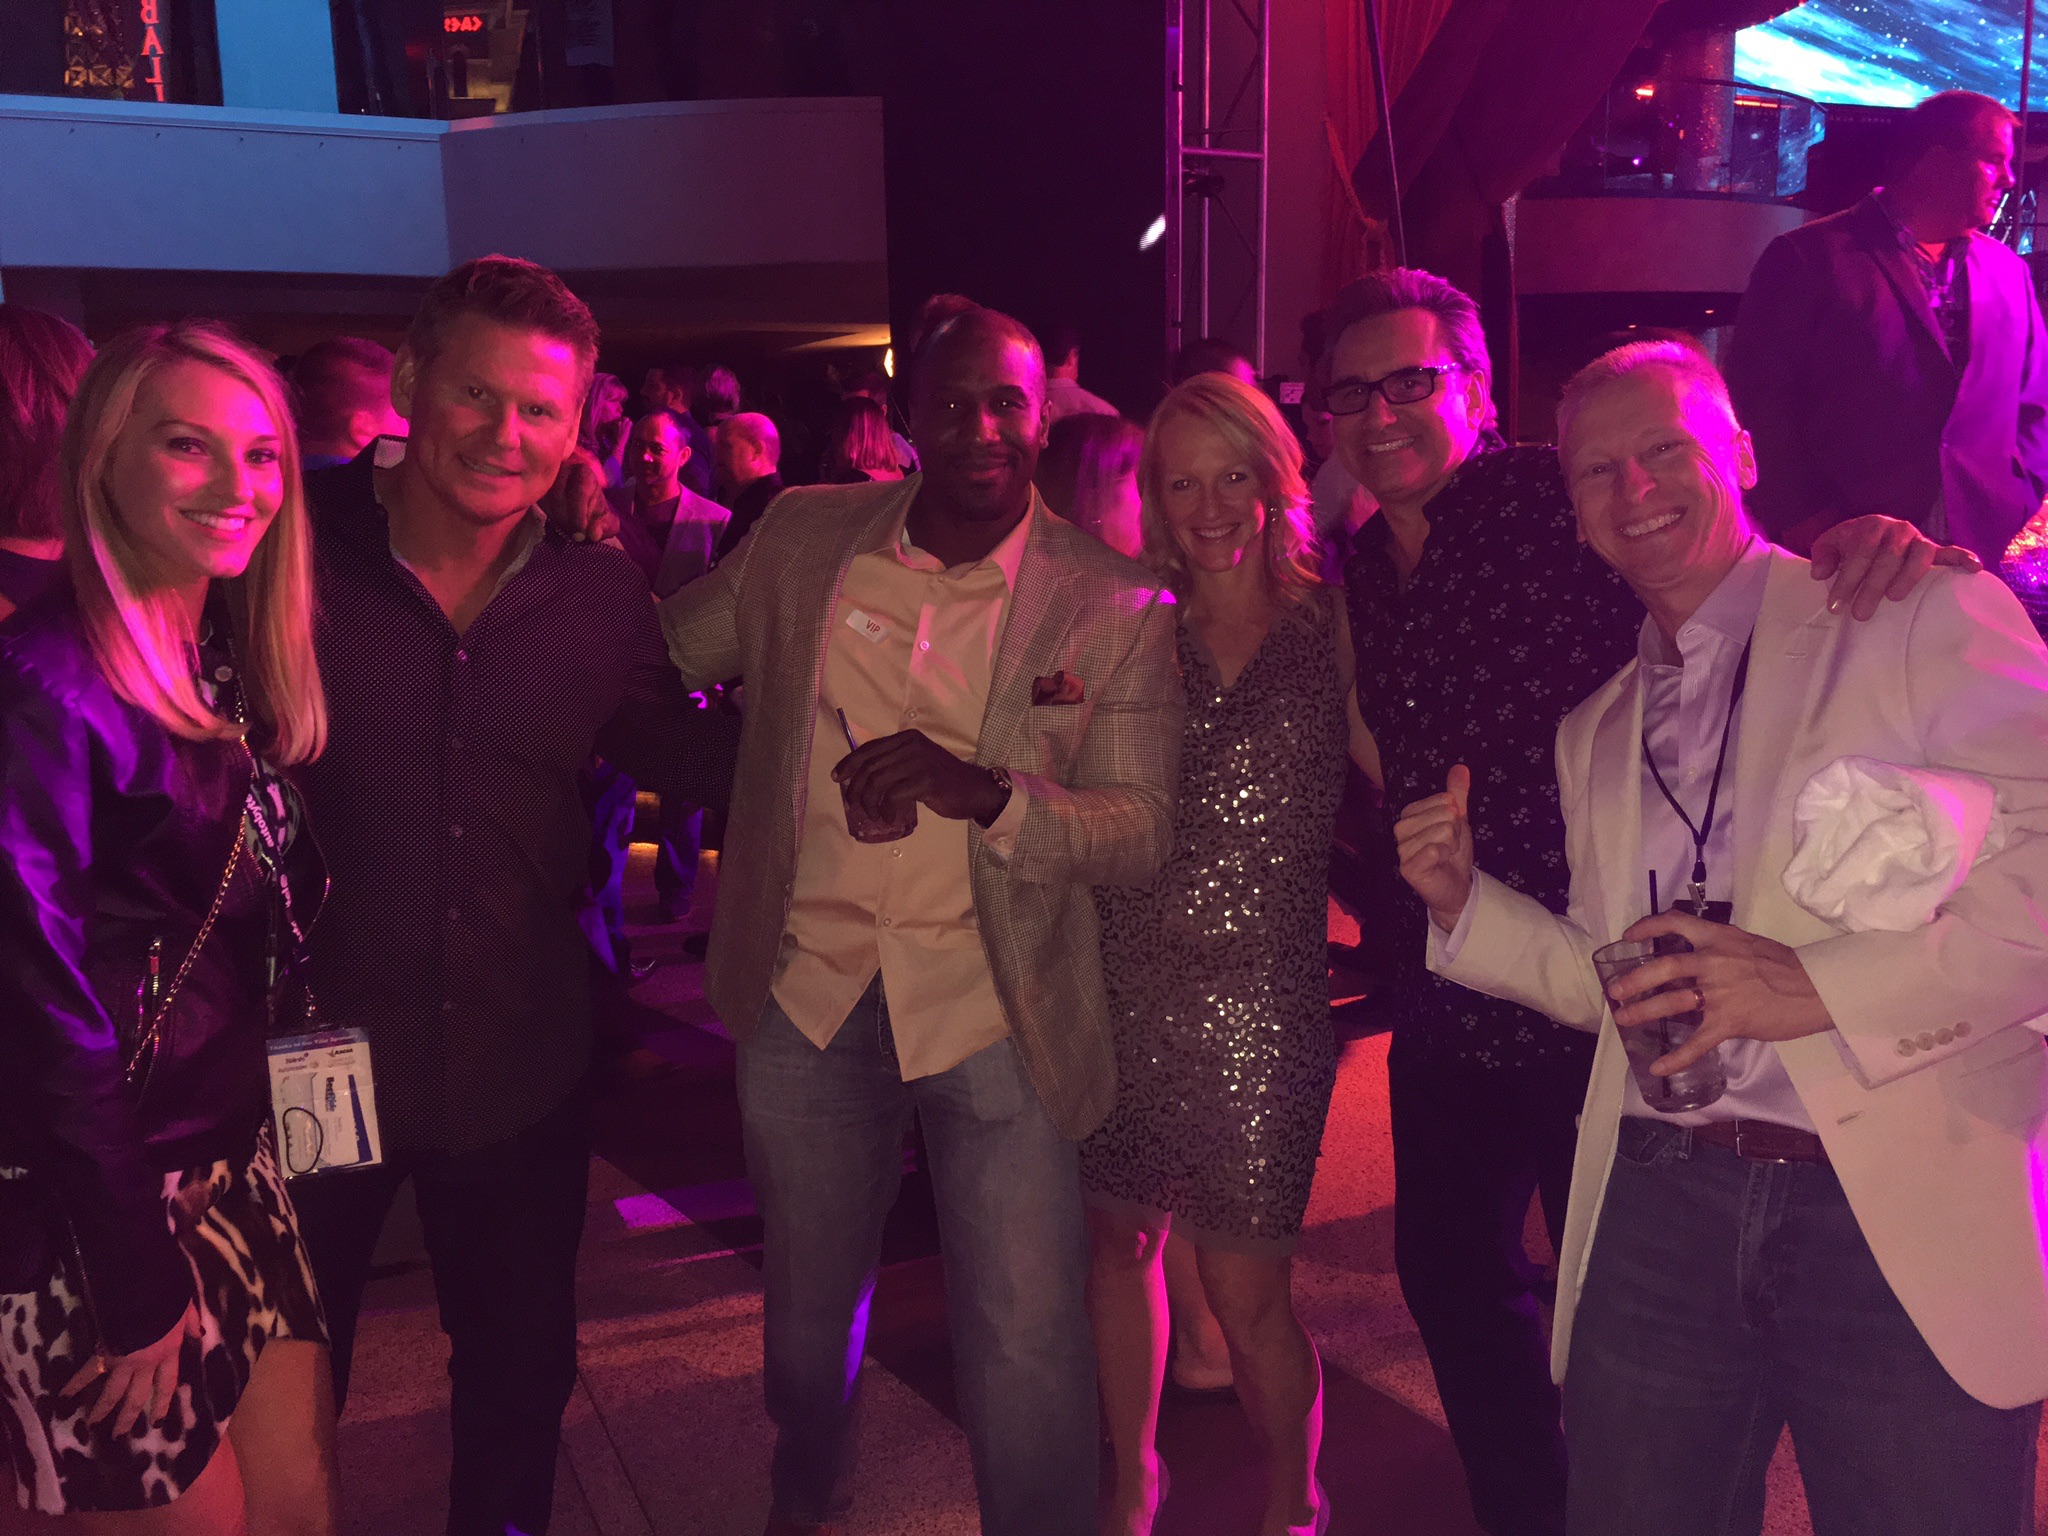 Tim Triplett, Alex Jefferson, Julie Frye, and Mike Roscoe at Drai's Nightclub